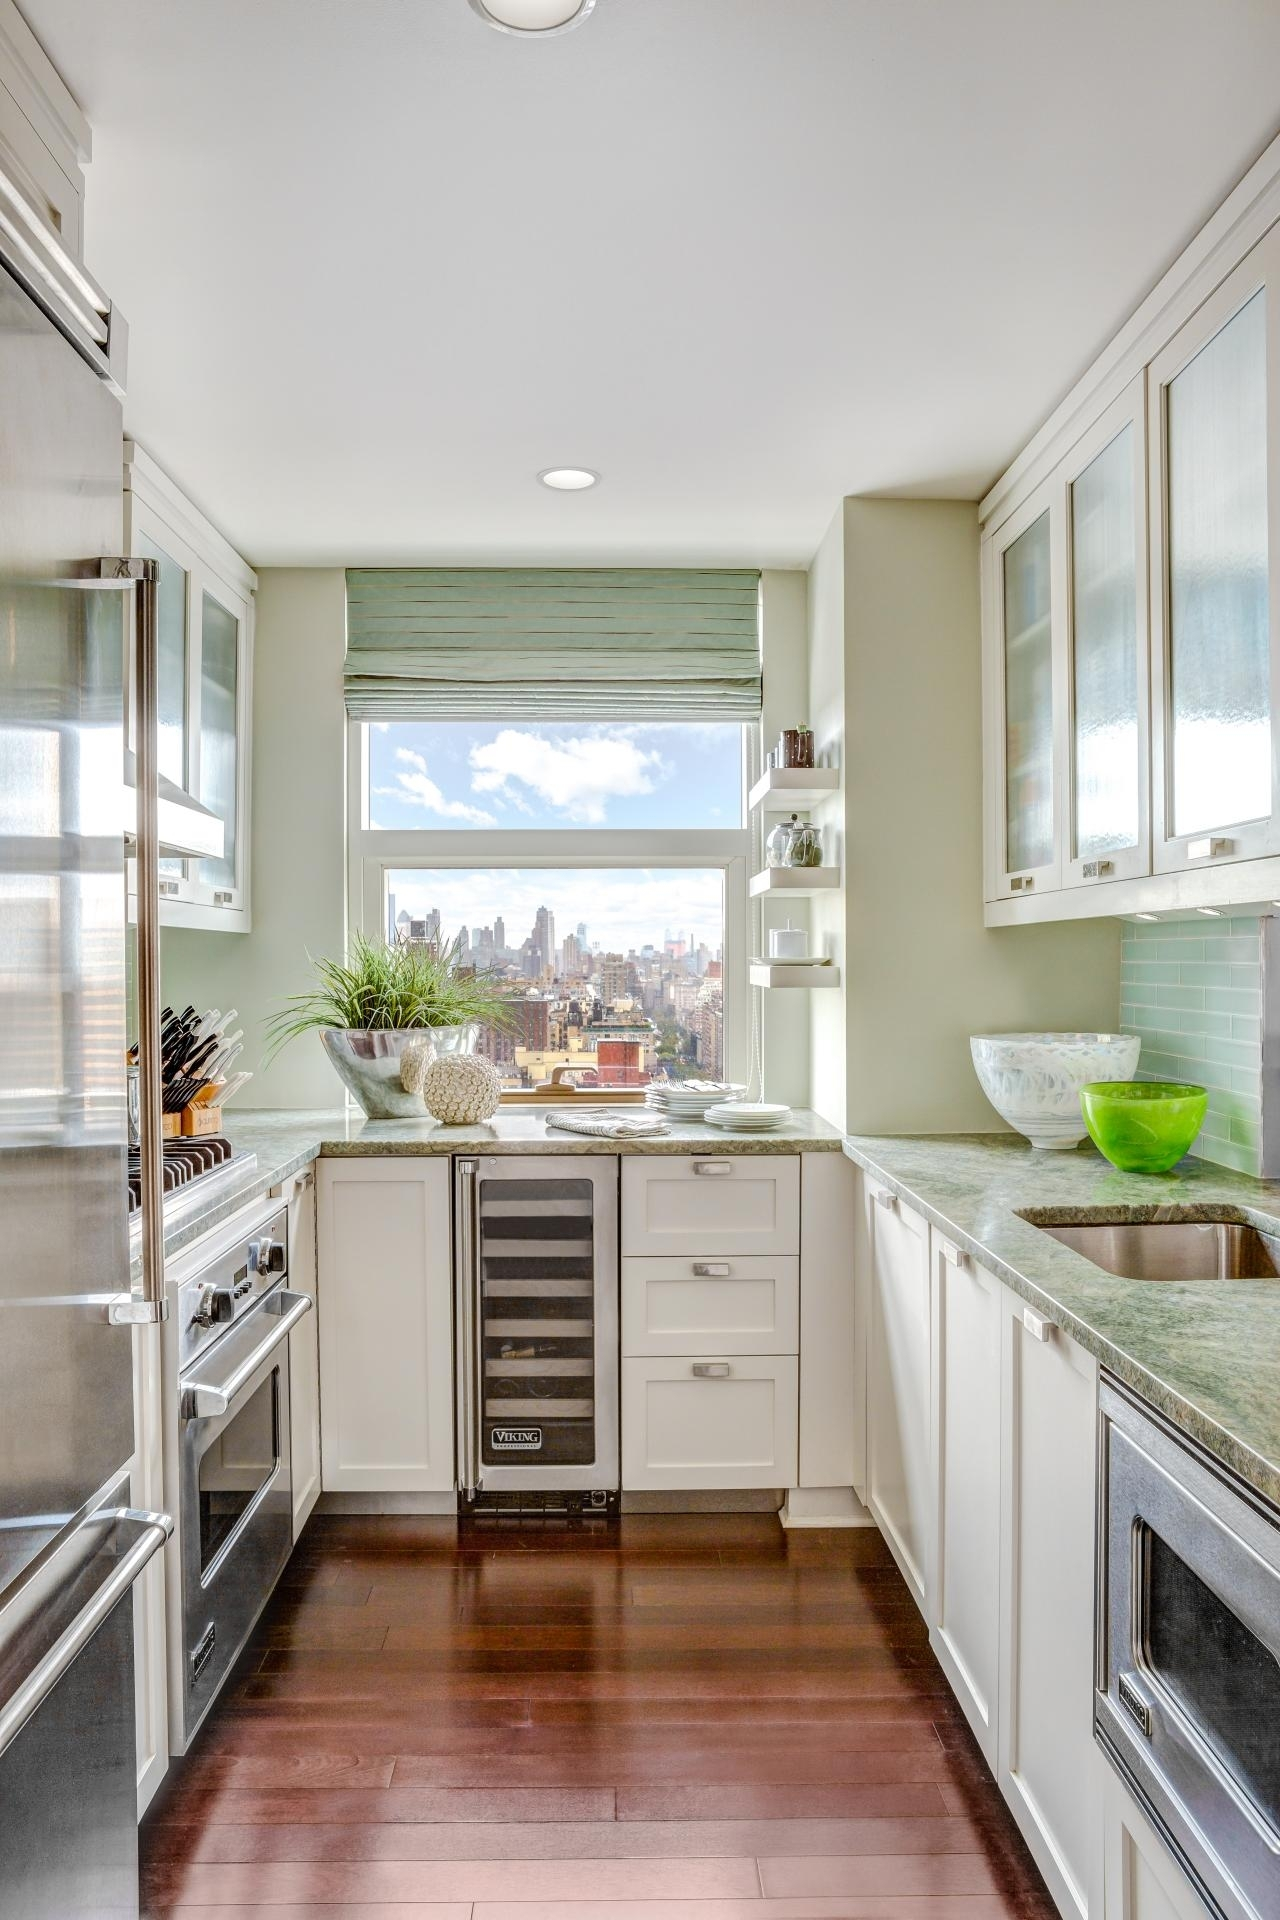 10 Ideal Kitchen Design Ideas For Small Kitchens %name 2020